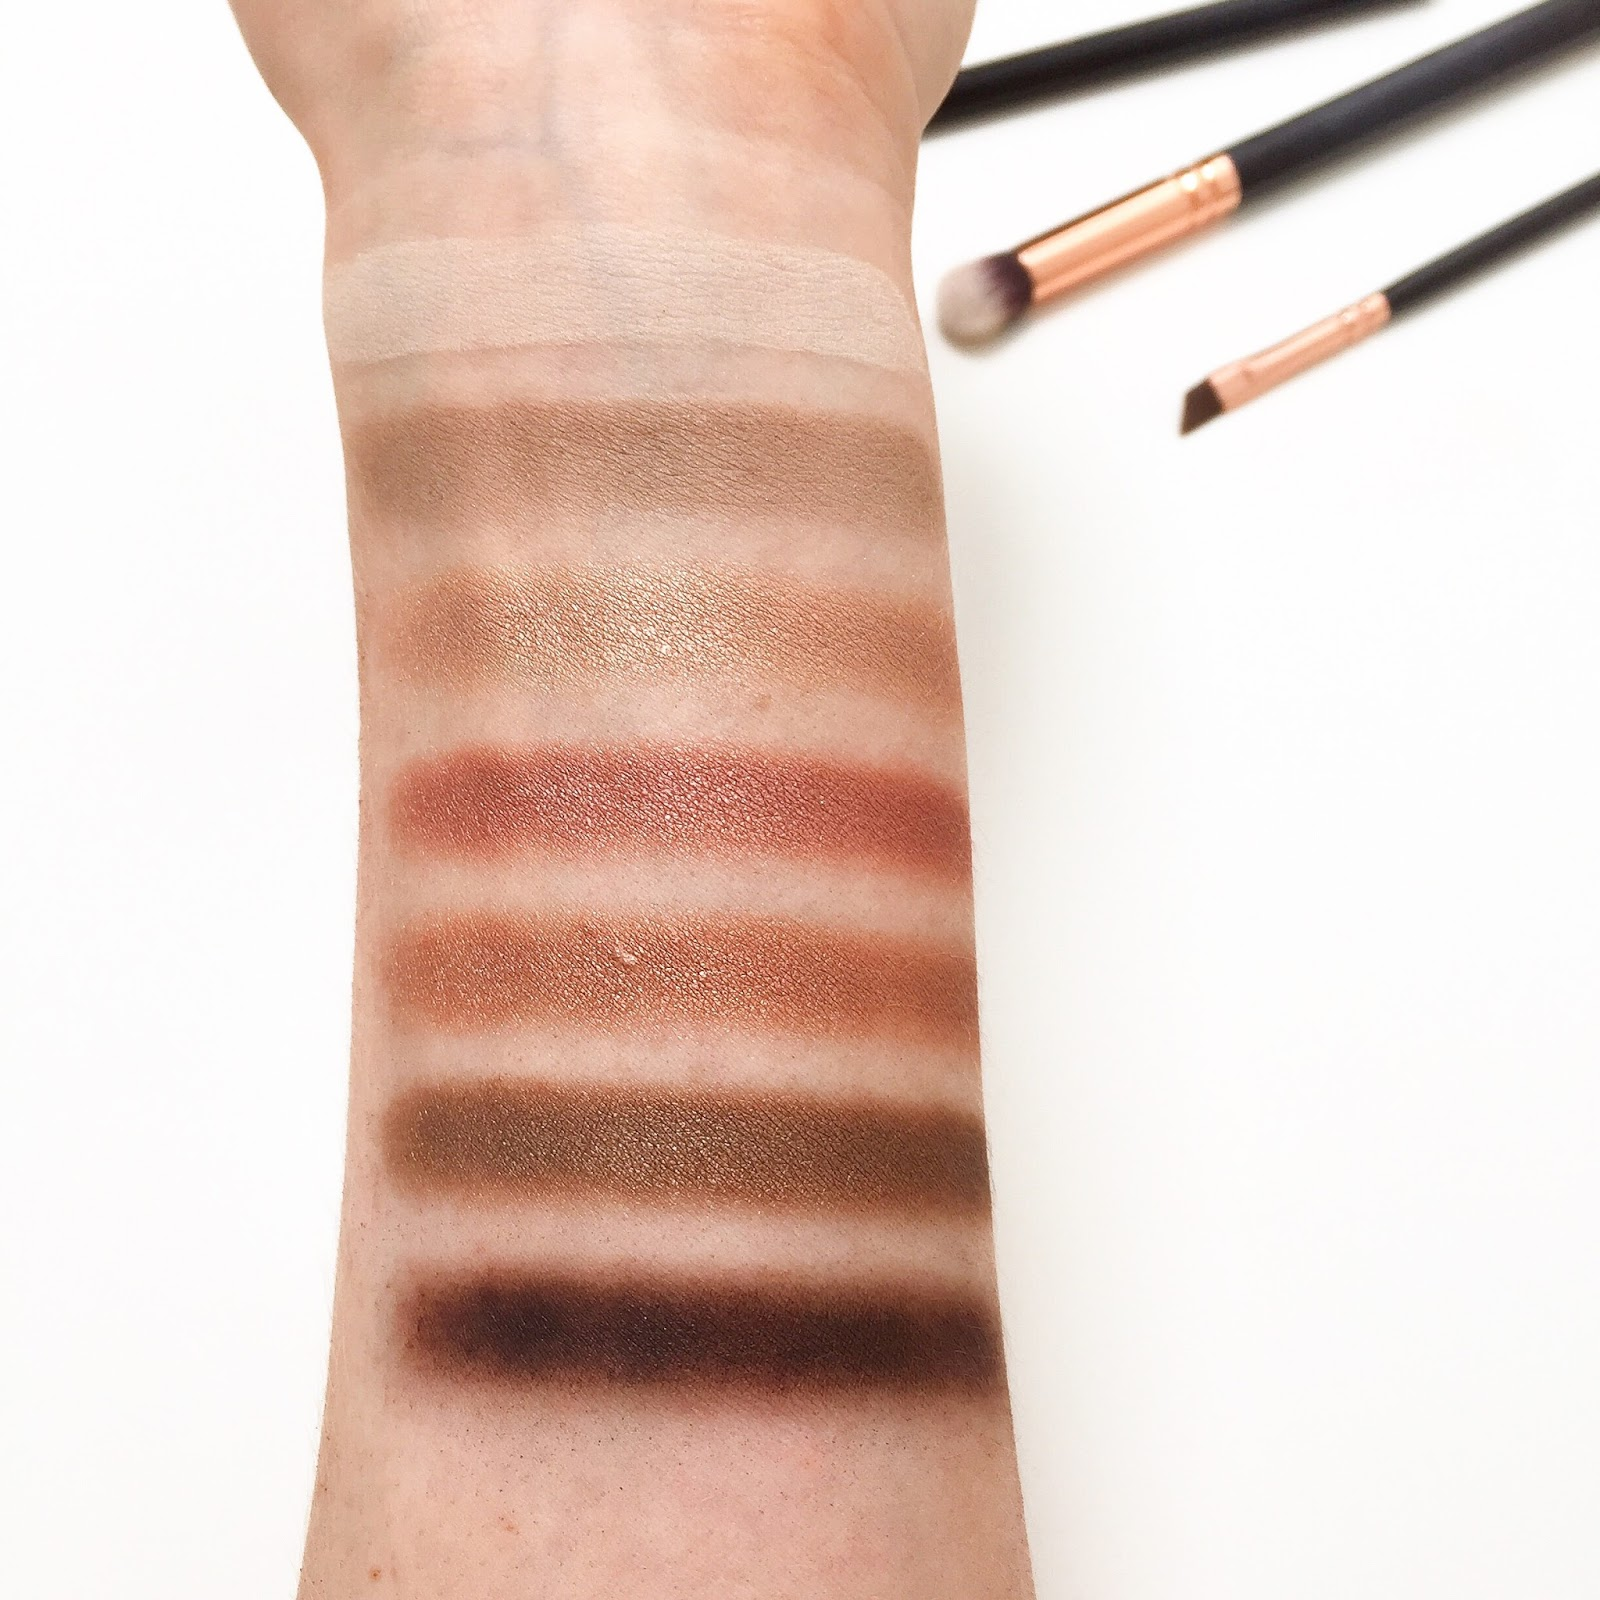 The Delectables Palette - Delicious Shades Of Nudes by Laura Geller #19